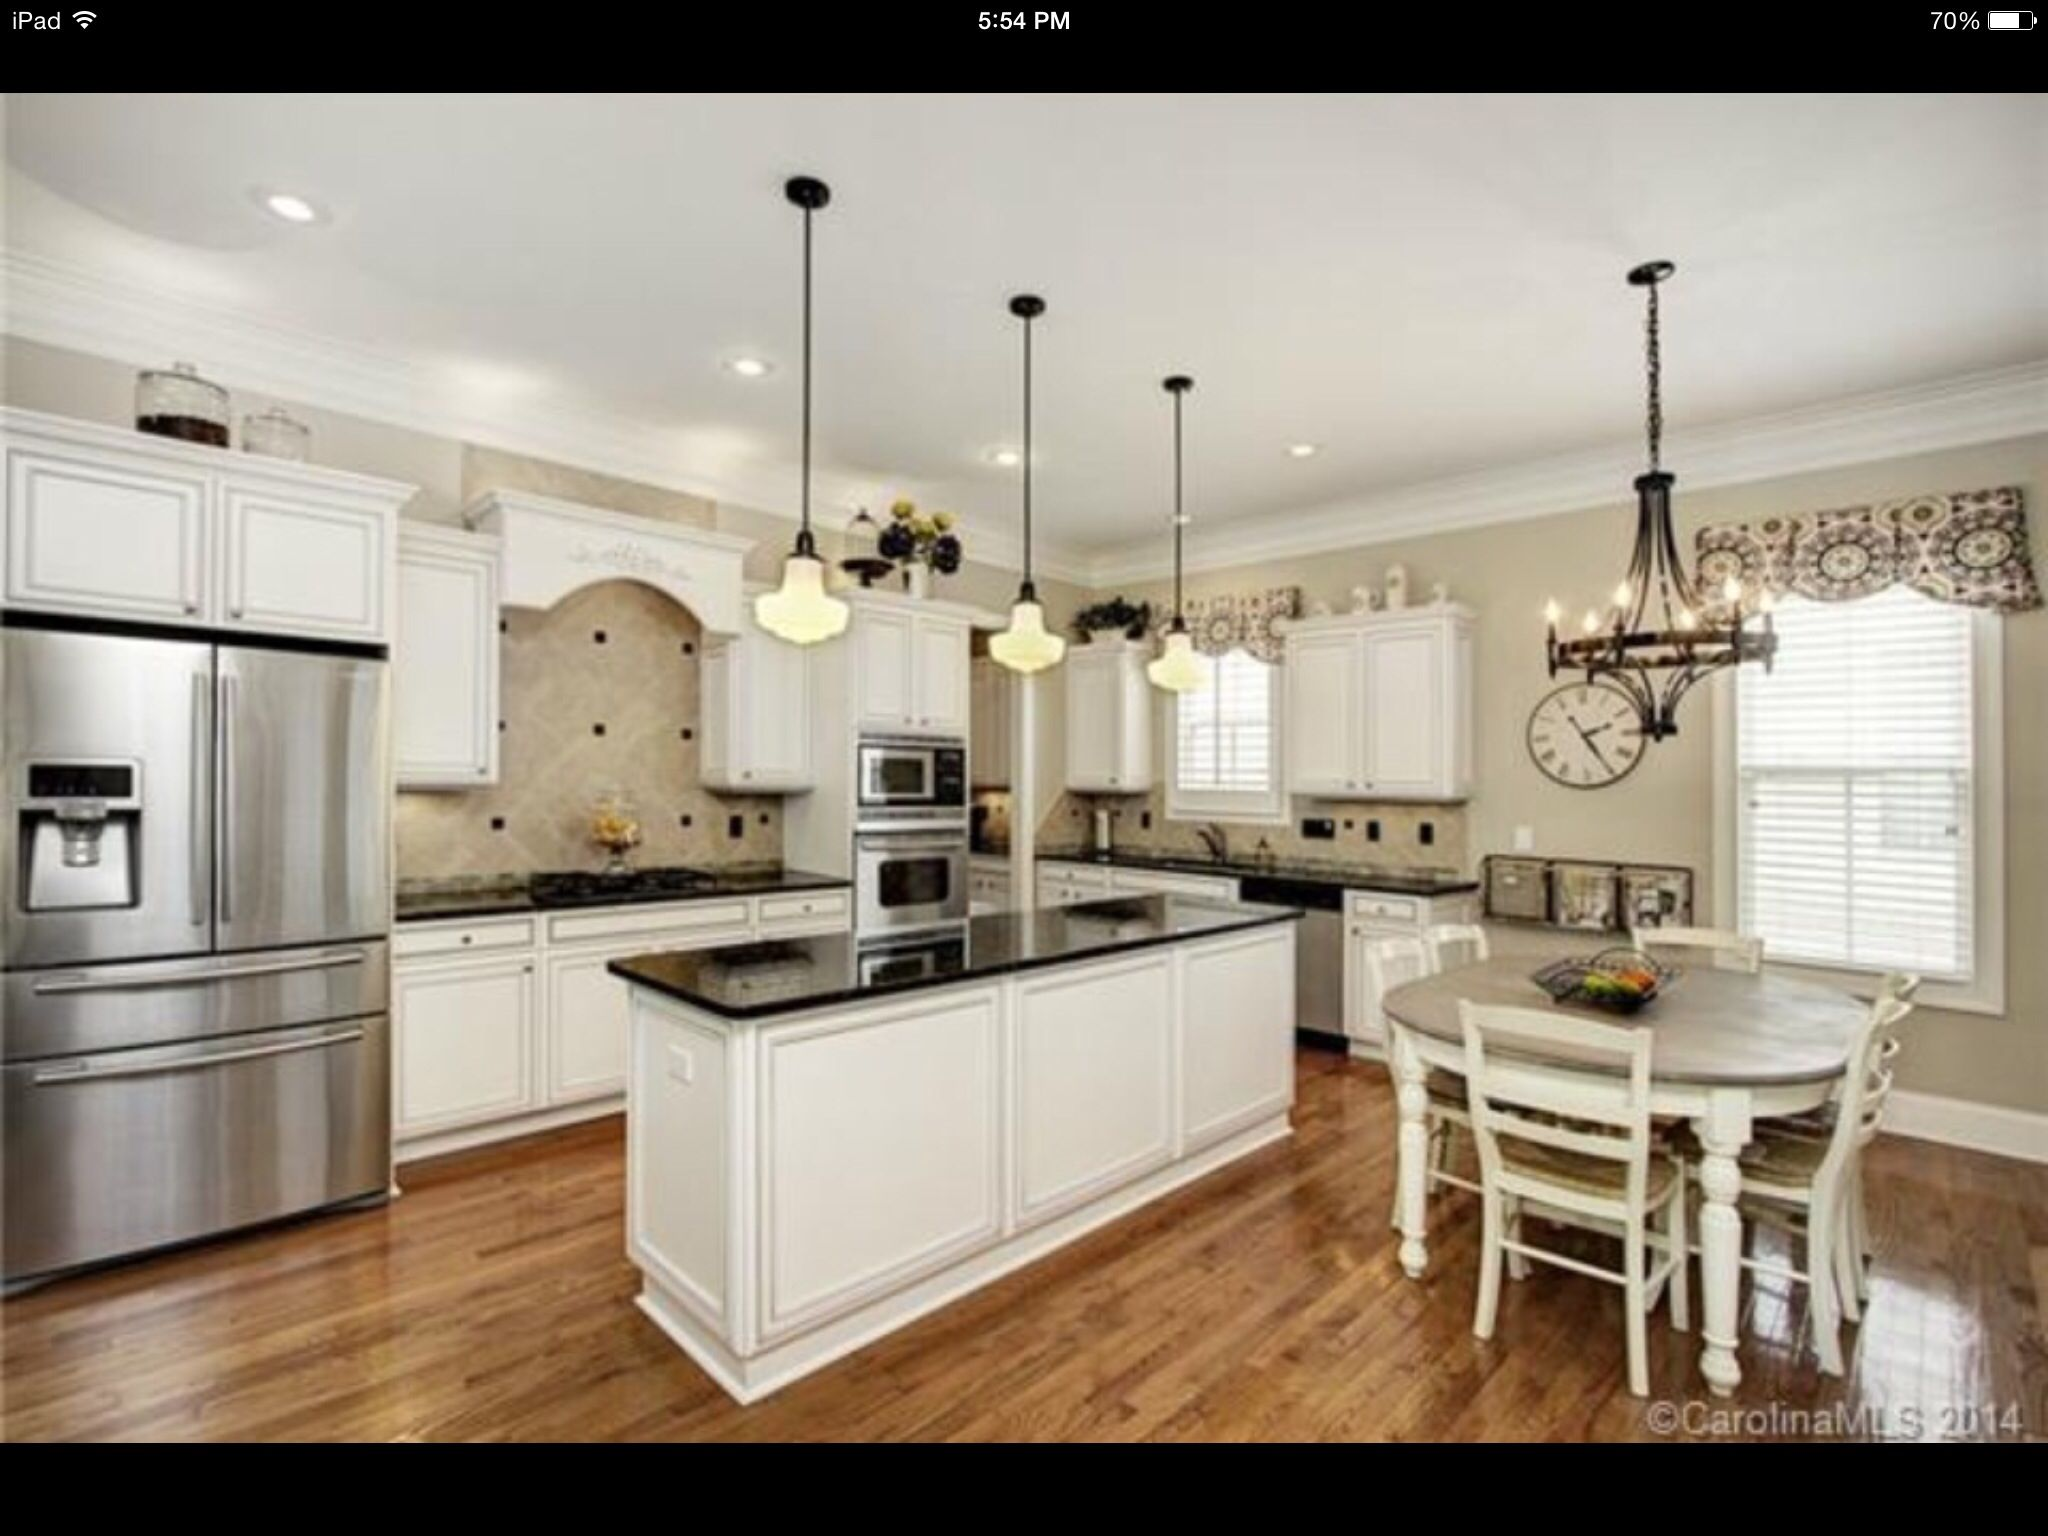 Pin By Connie Rushing On Indoor Lighting Home Kitchens Kitchen Design Home